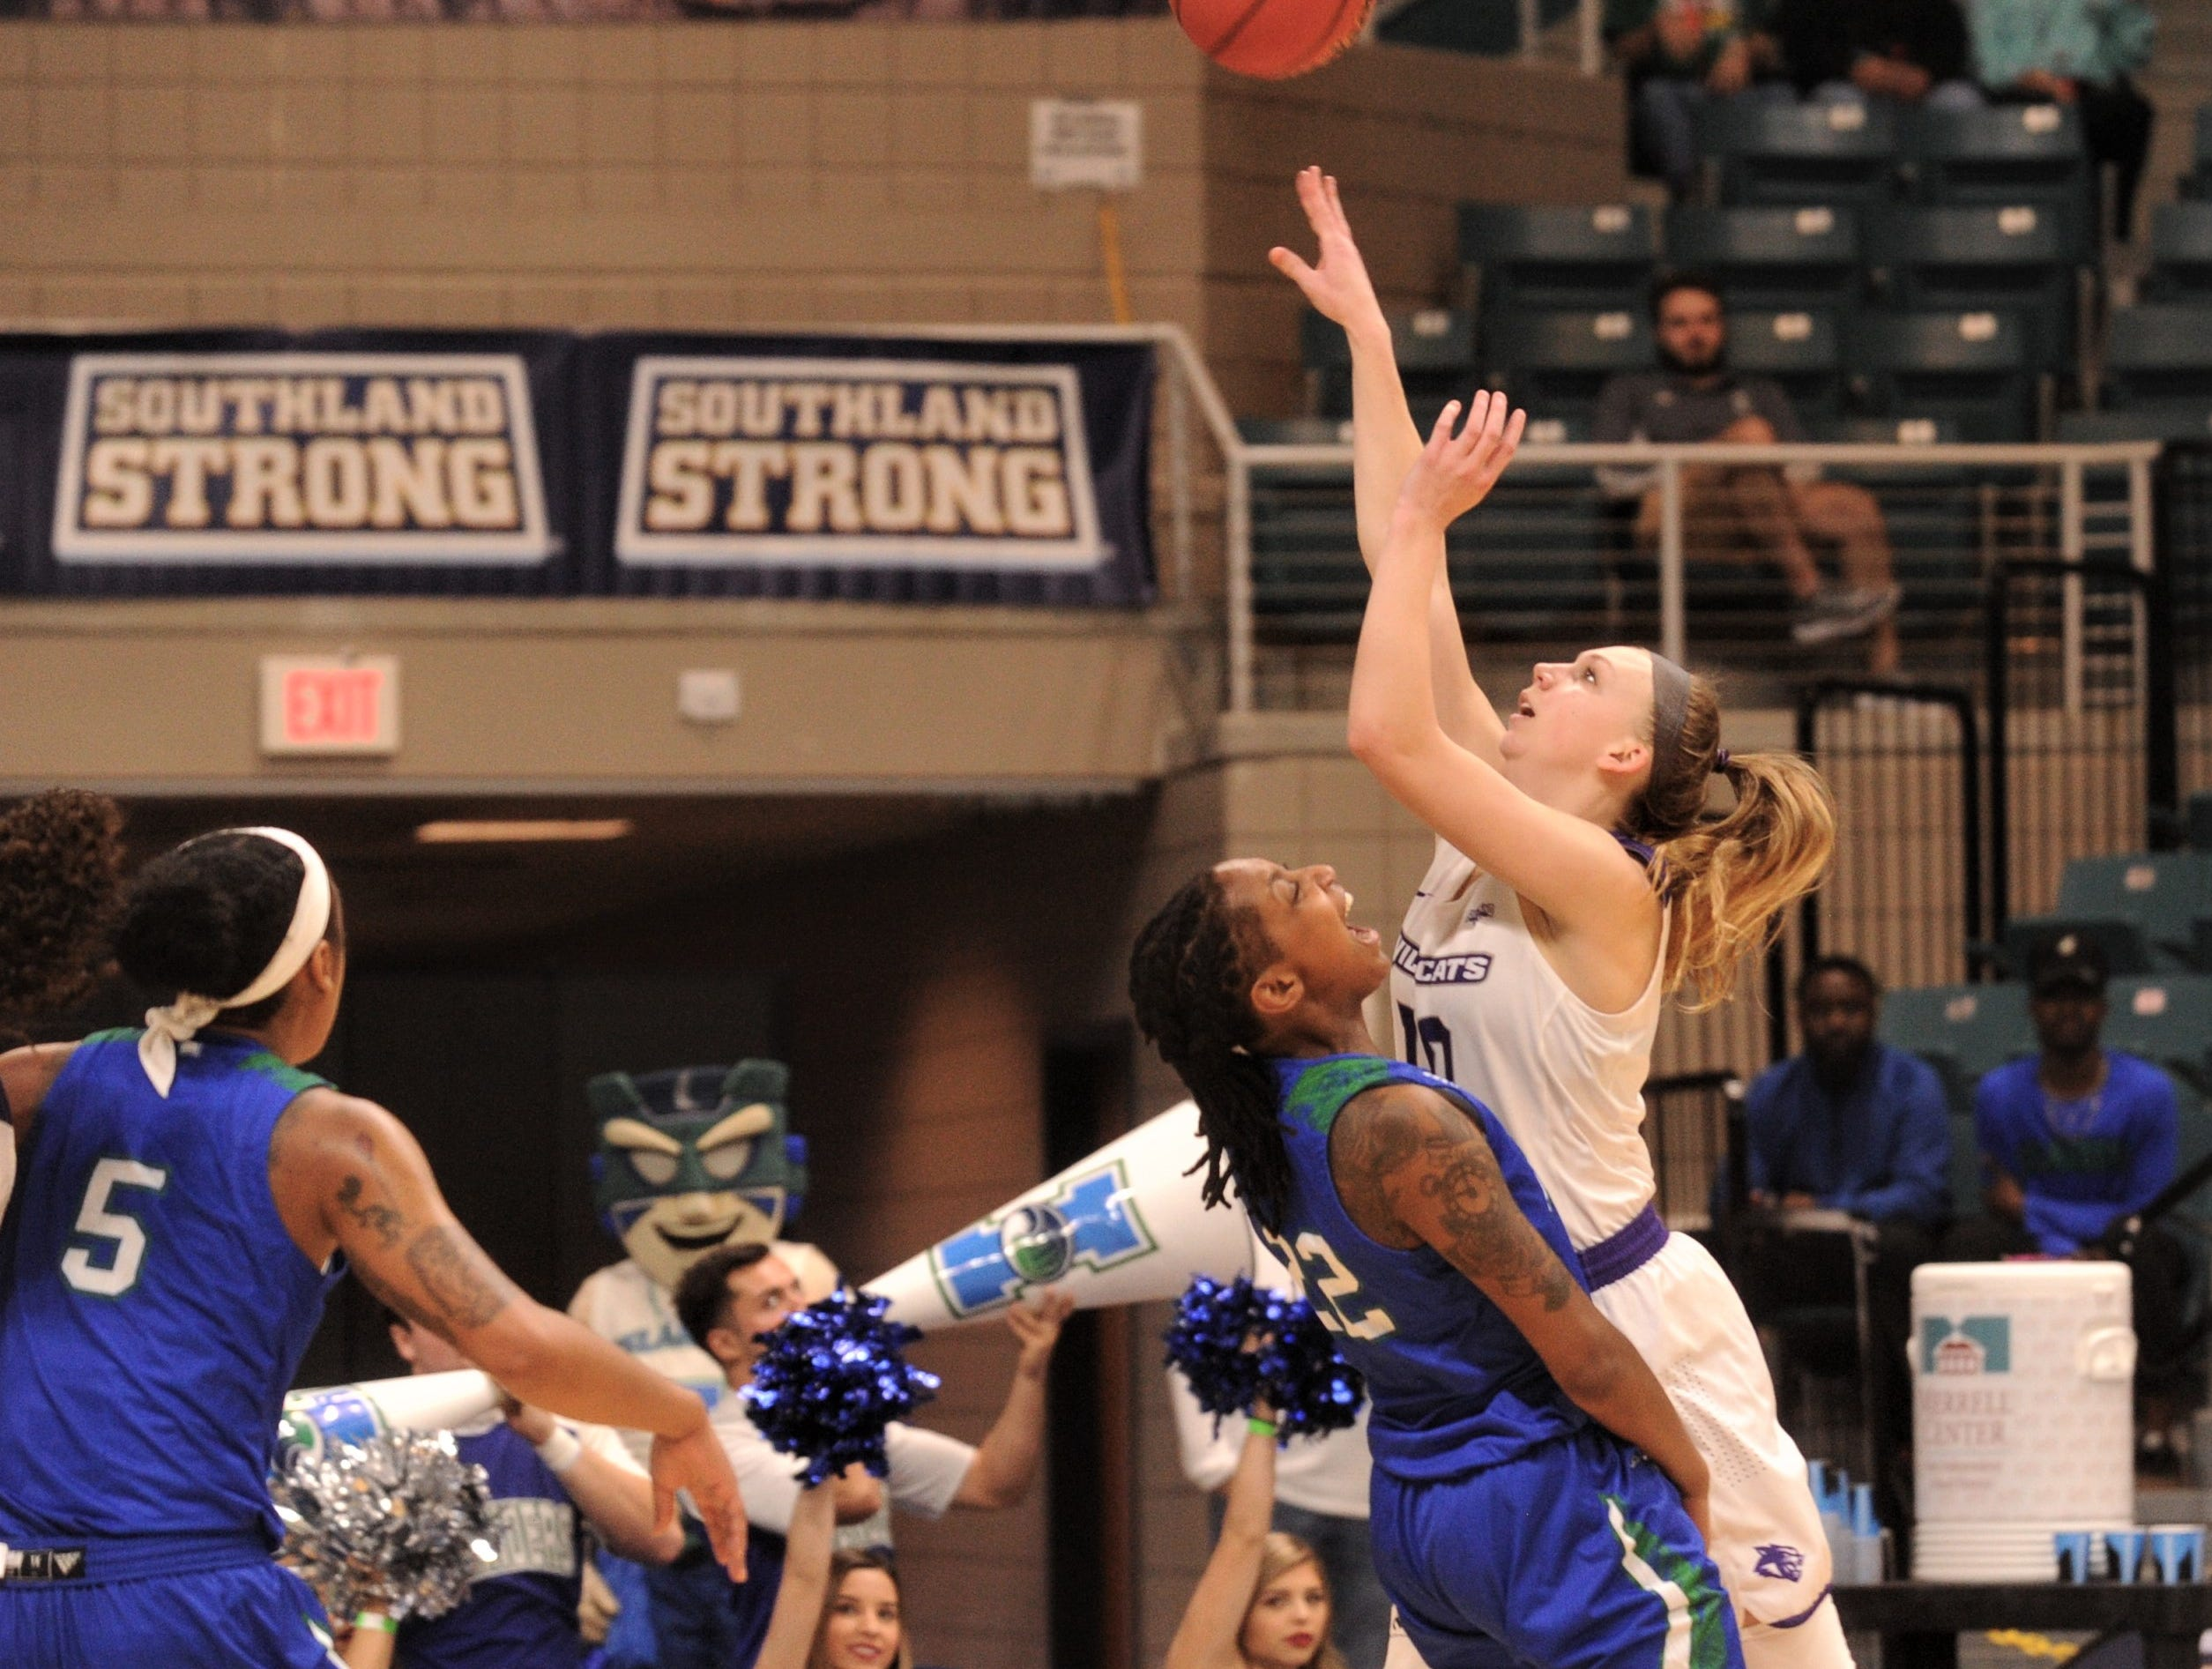 ACU's Breanna Wright, right, shoots over Texas A&M-Corpus Christi's Dalesia Booth in the first quarter of the Southland Conference Tournament championship game Sunday, March 17, 2019, at the Merrell Center in Katy.